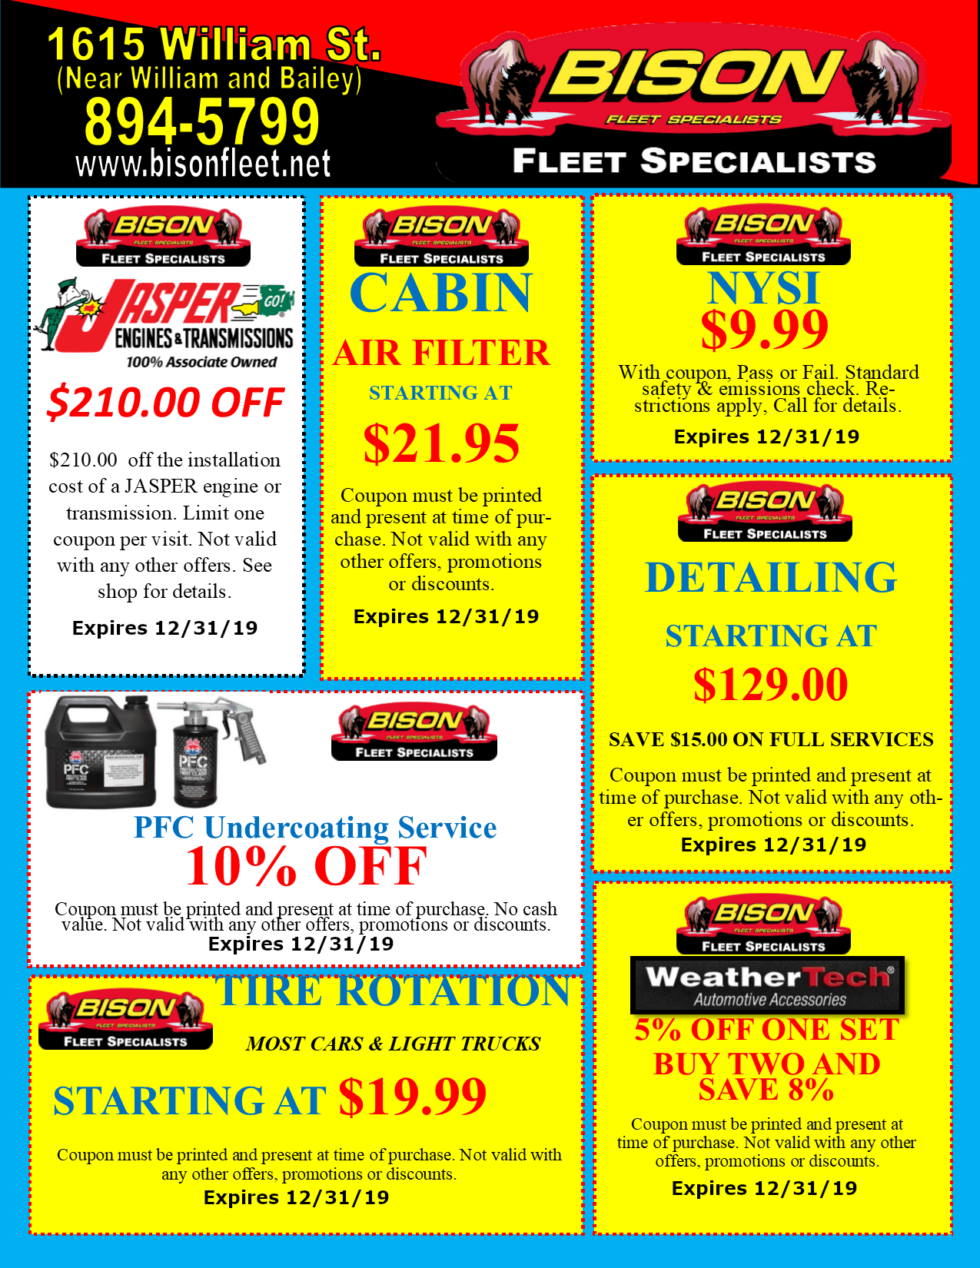 Bison-Fleet-Coupons-for-Auto-Detailing-NYSI-and-More